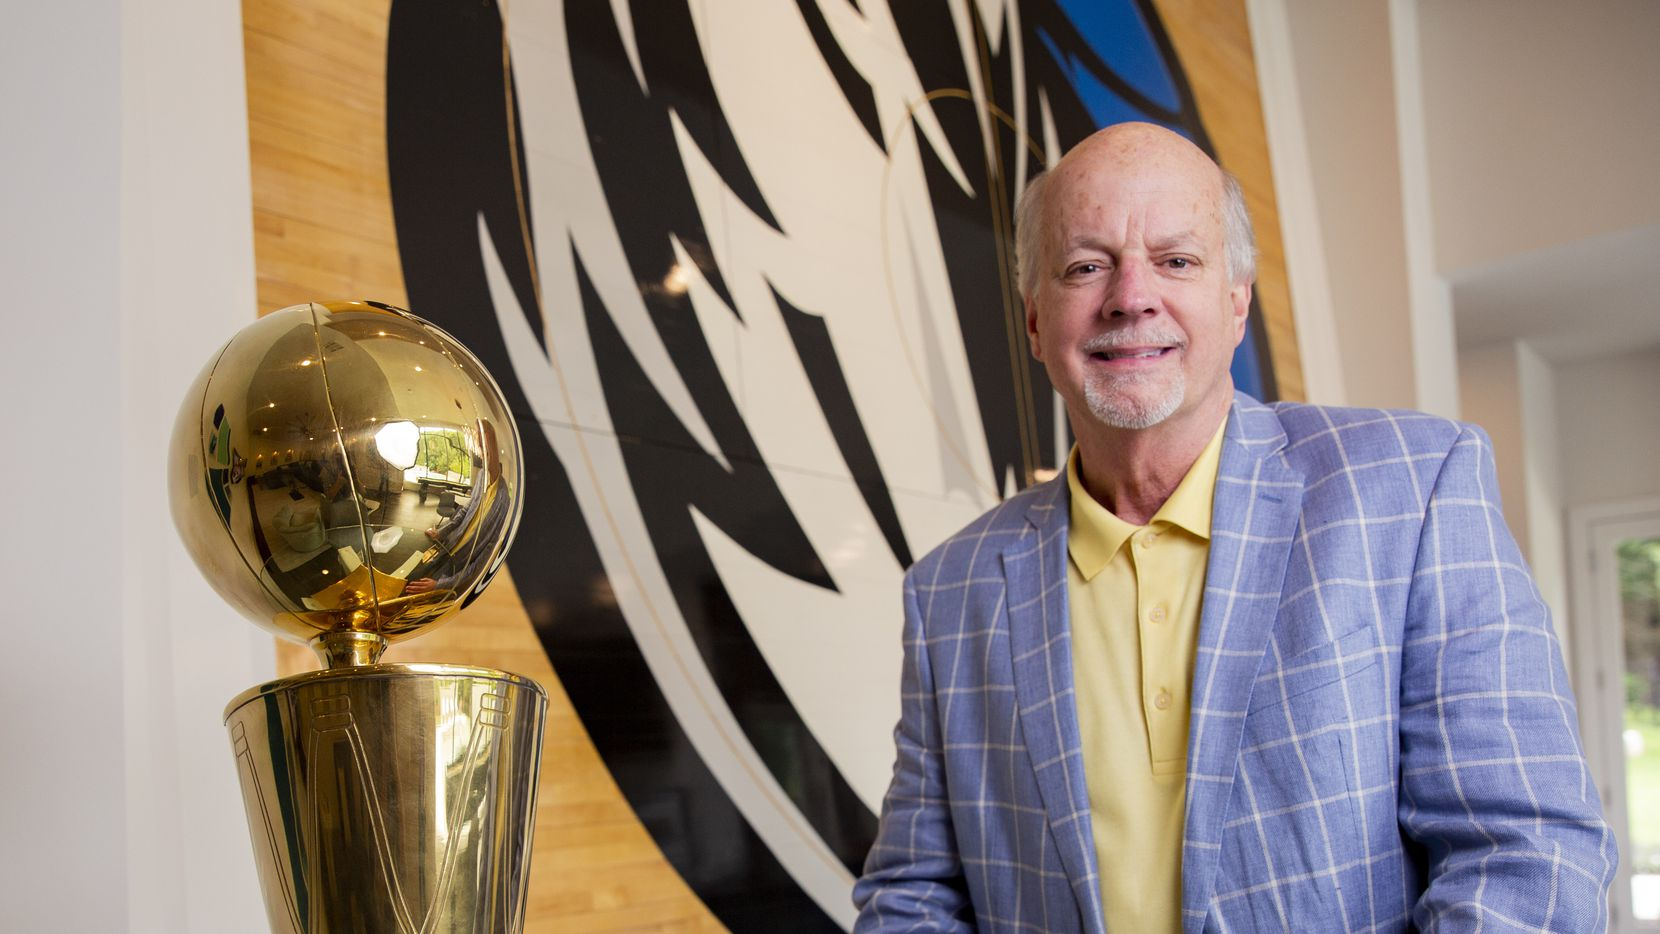 Mavericks super fan Mark Thompson, owner of Smith-Thompson security company, poses in front of the center area of the hardwood floor from the 2011 NBA Finals on his wall and his replica of the championship trophy (given to him by Dirk Nowitzki) at his home on Wednesday, June 9, 2021, in Fairview.